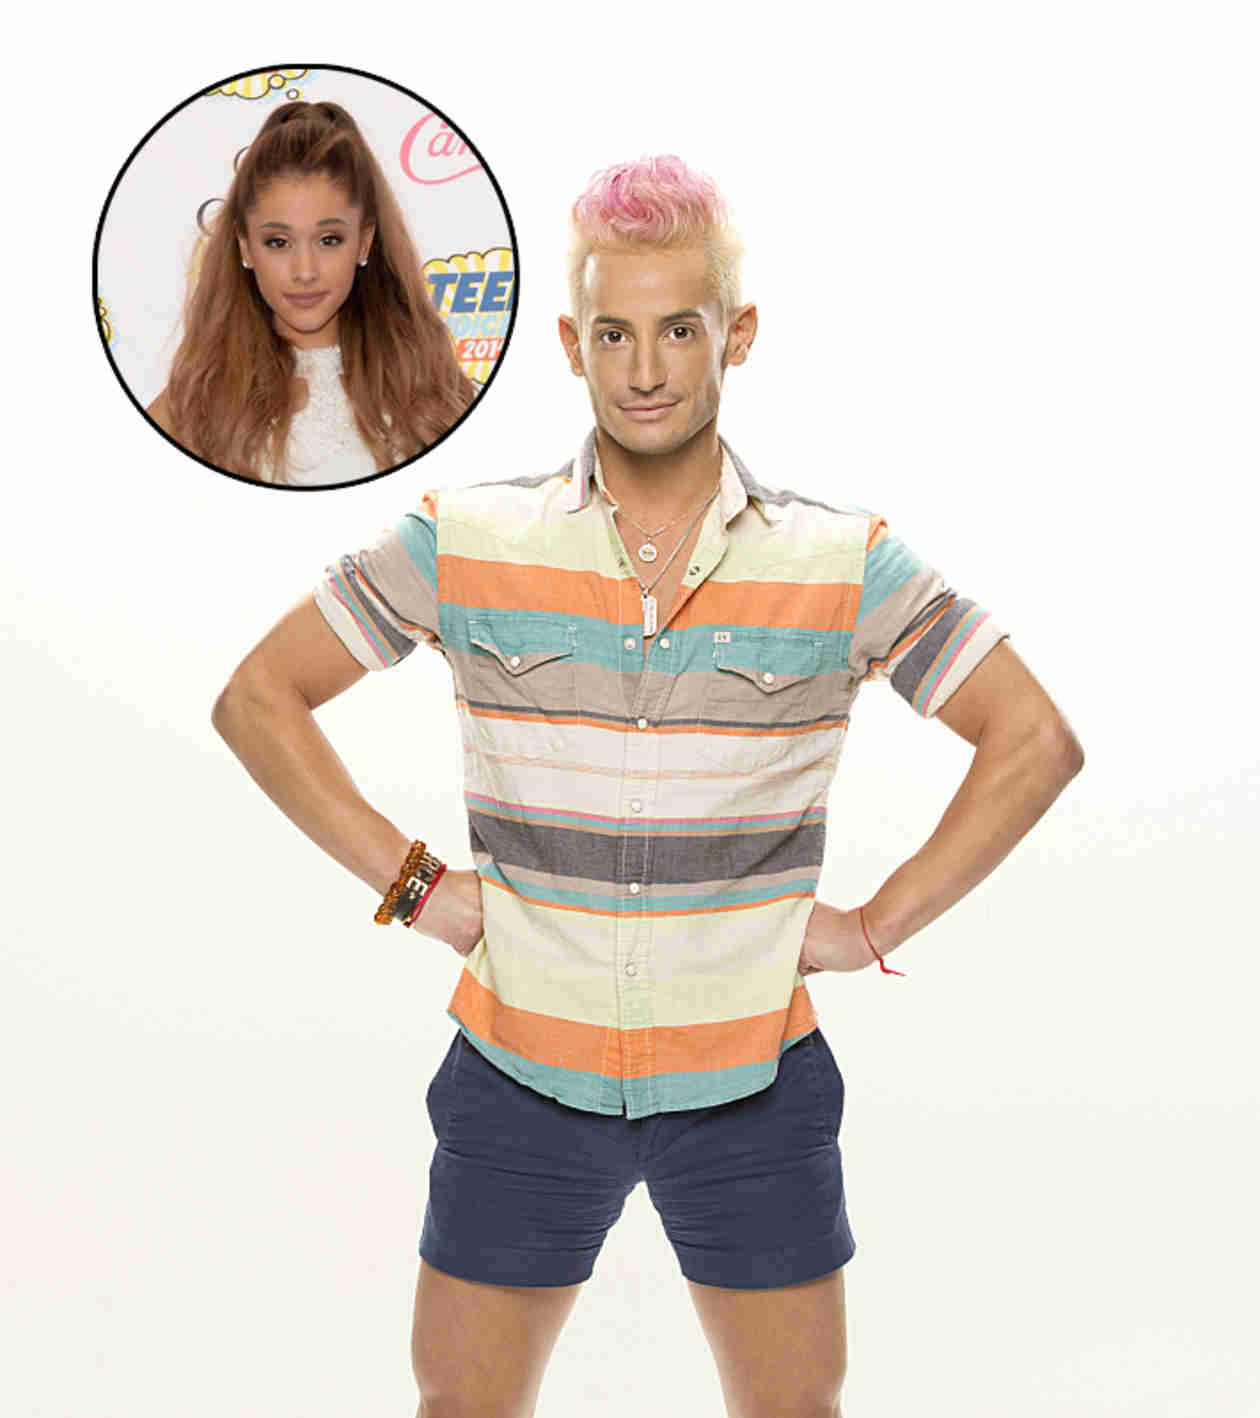 Big Brother 16: Ariana Grande Unleashes Wrath on Anti-Gay Frankie Grande Hater (VIDEO)